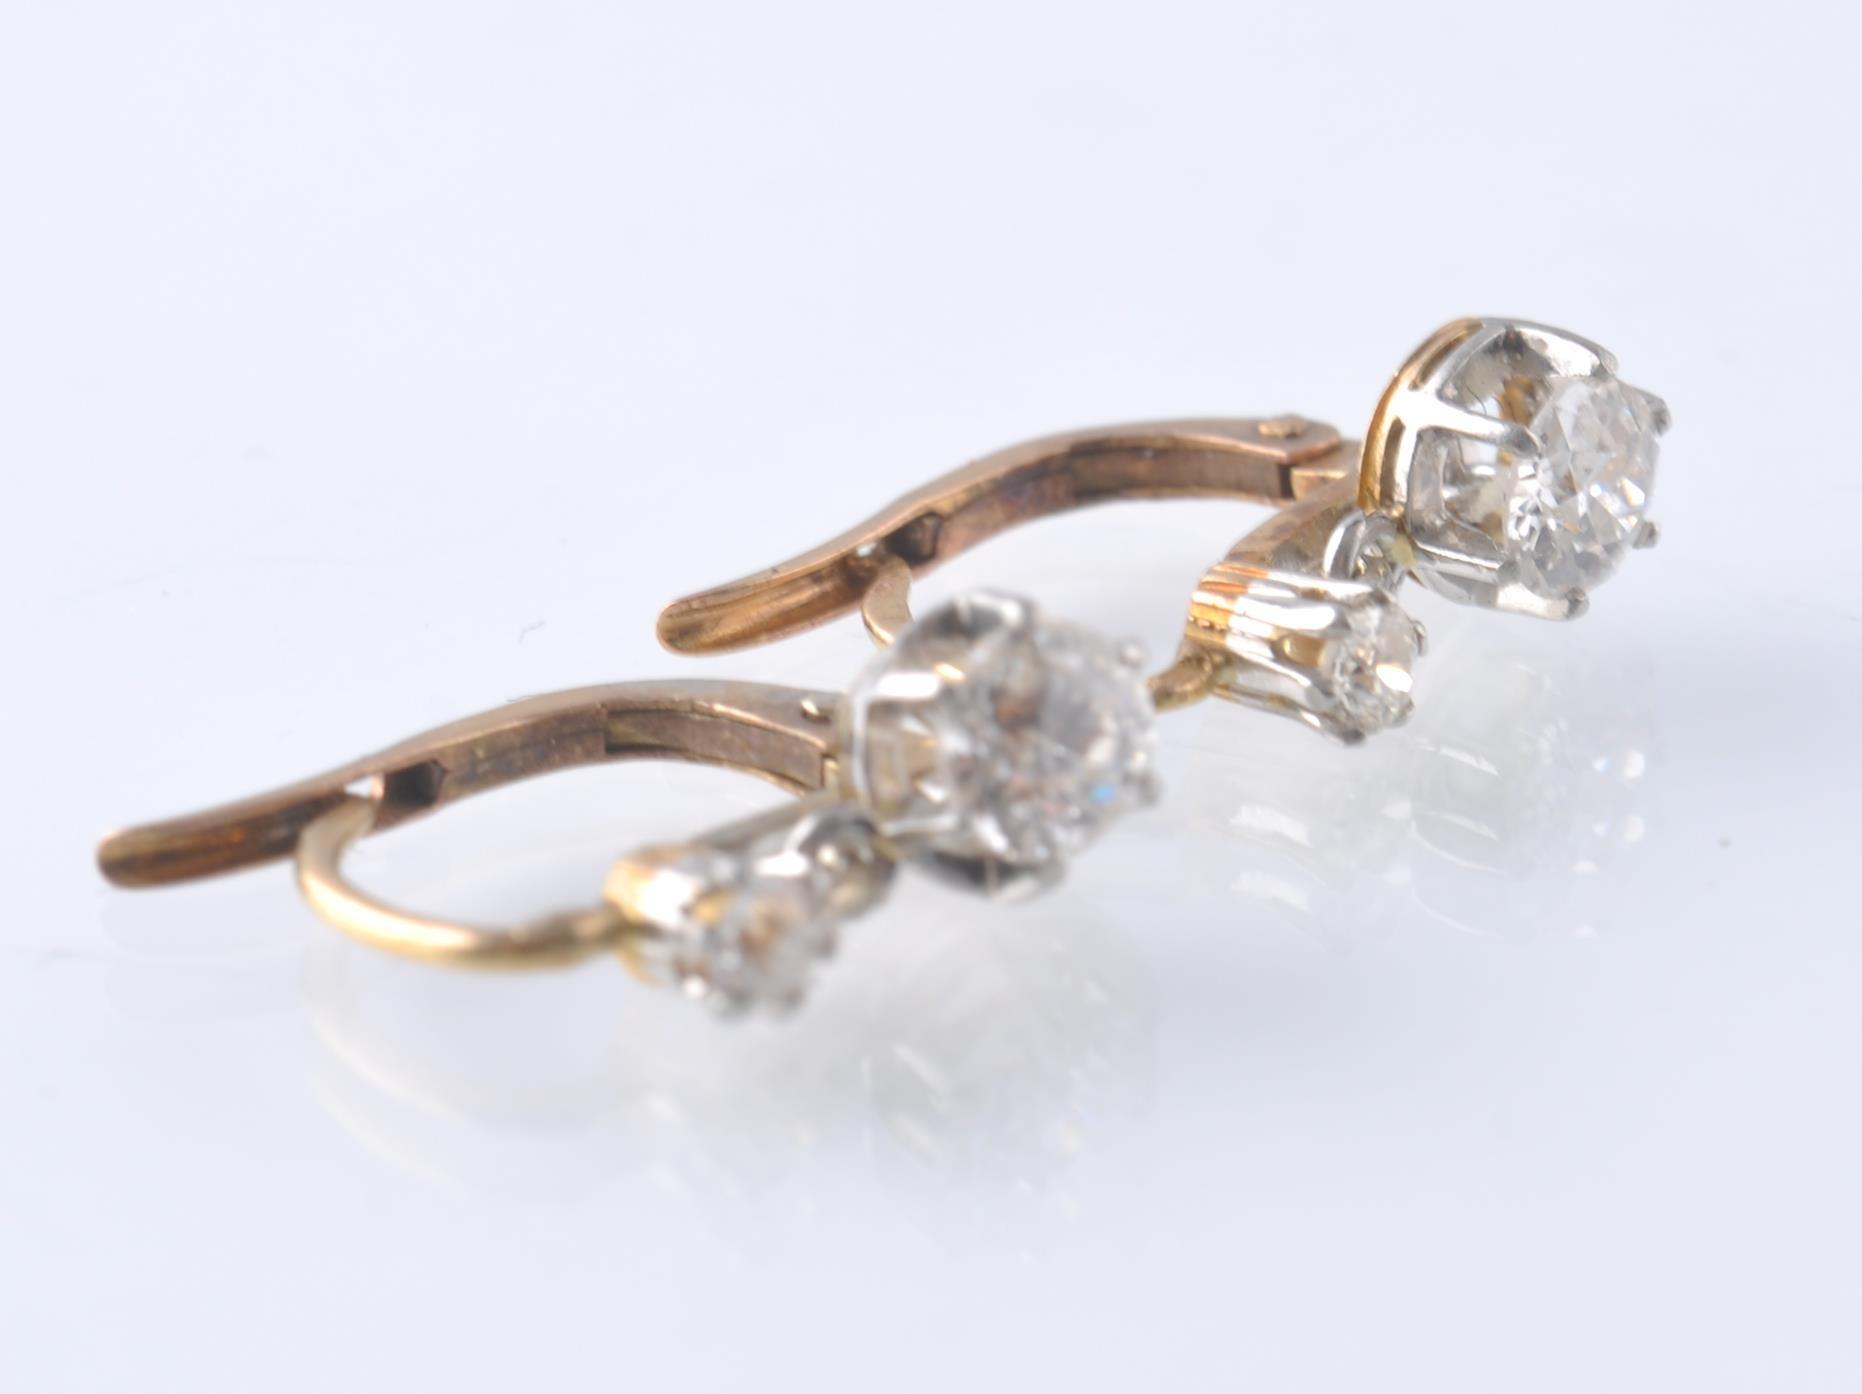 A PAIR OF FRENCH 18CT GOLD PLATINUM AND DIAMOND DR - Image 2 of 3